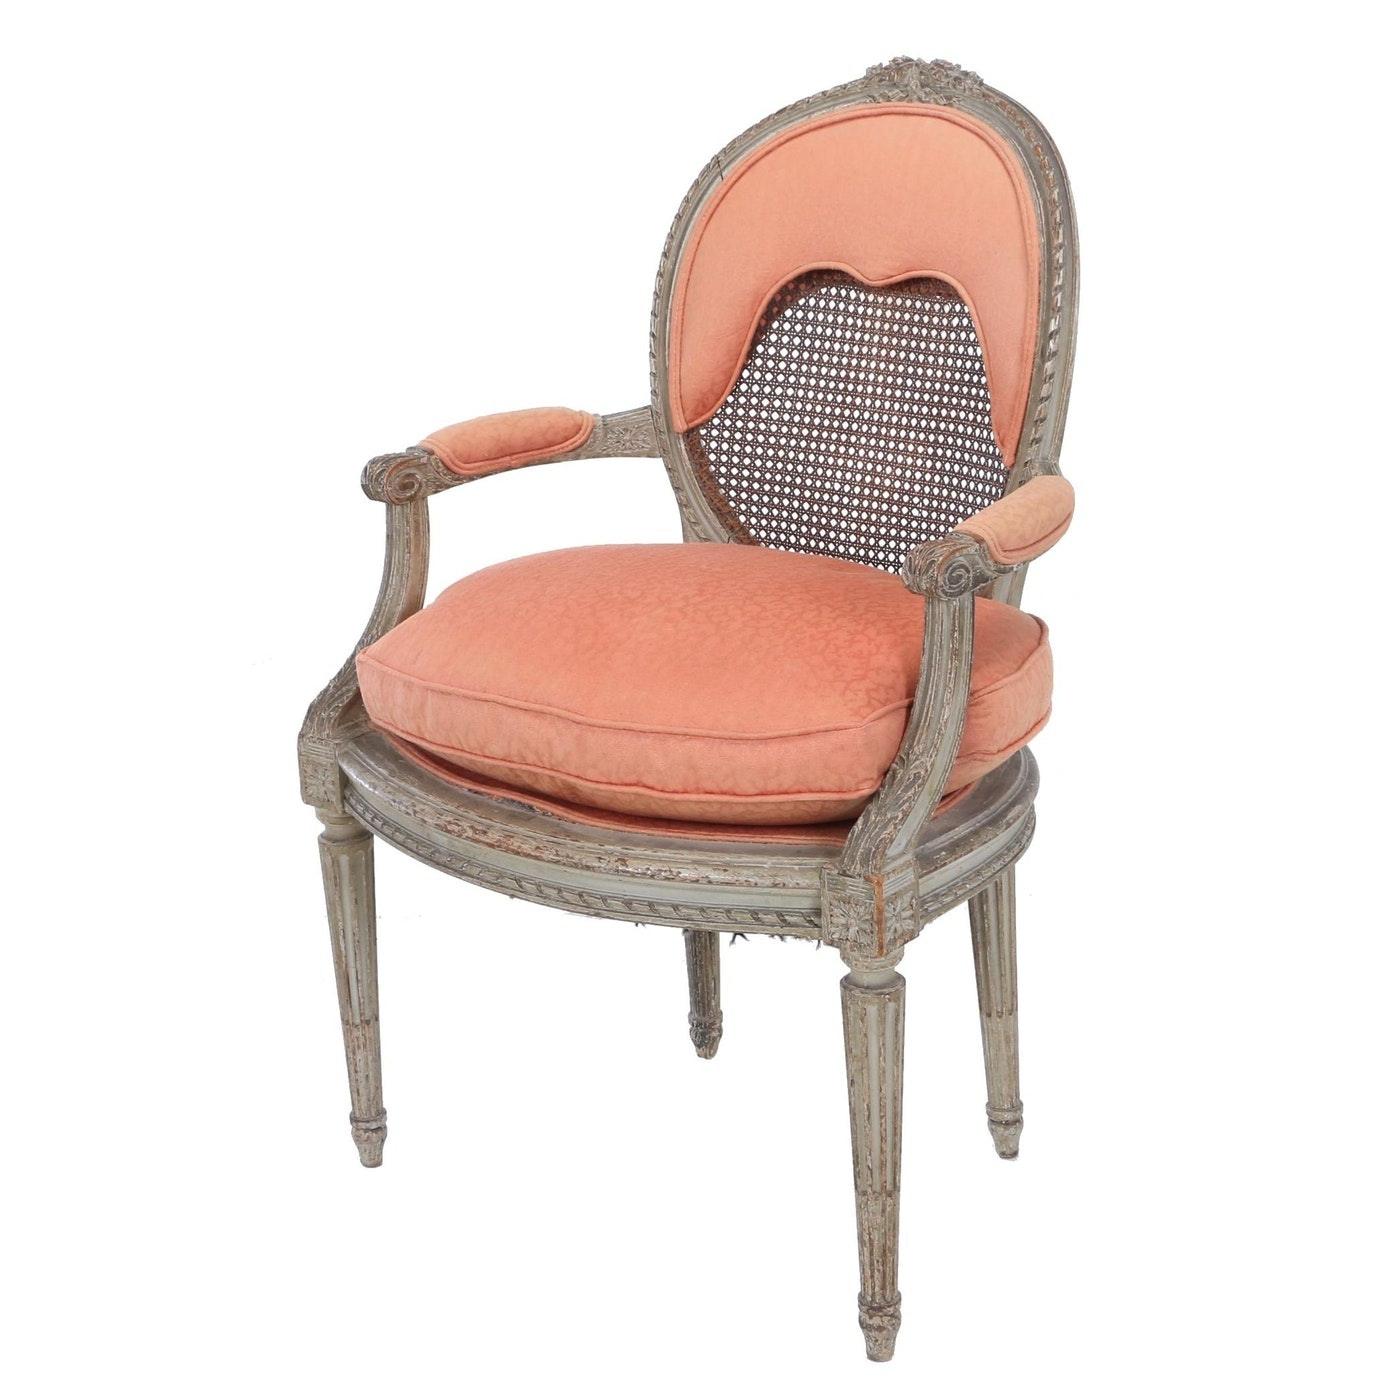 Louis XVI Style Painted Fauteuil by Bedel & Cie, Late 19th/Early 20th Century